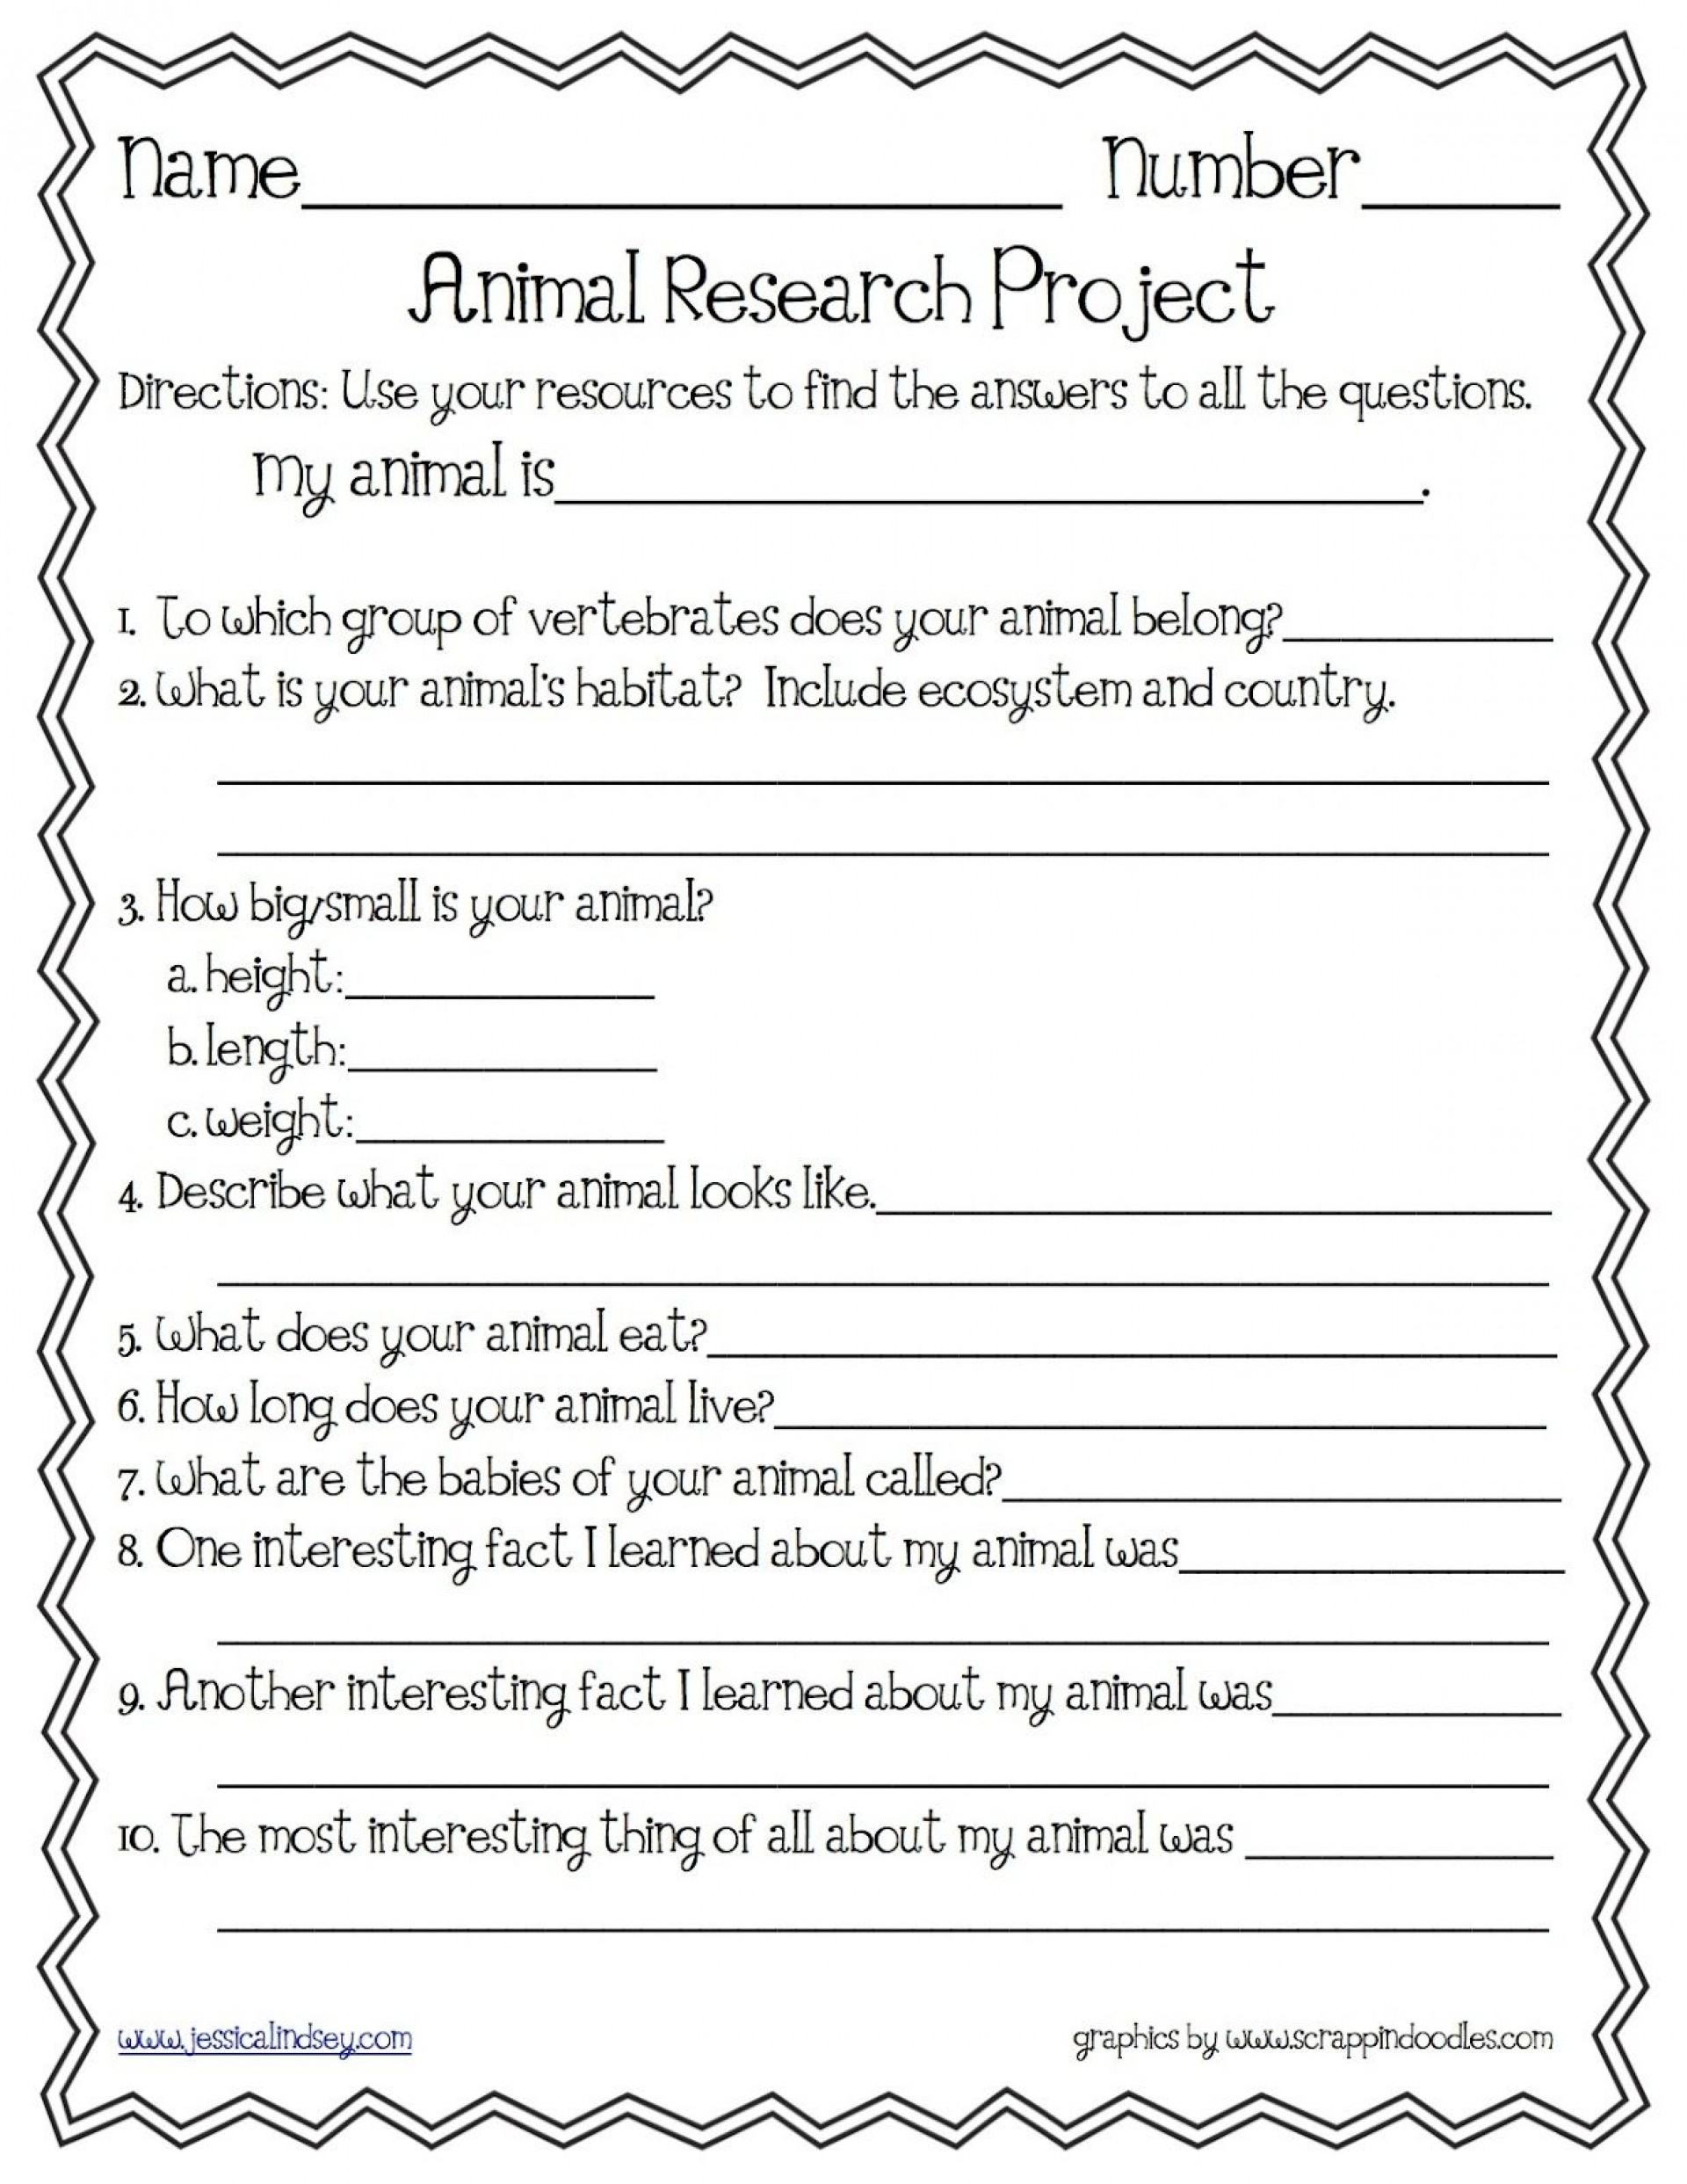 011 Research Paper Animal Striking Topics Behavior Farm Topic Ideas 1920